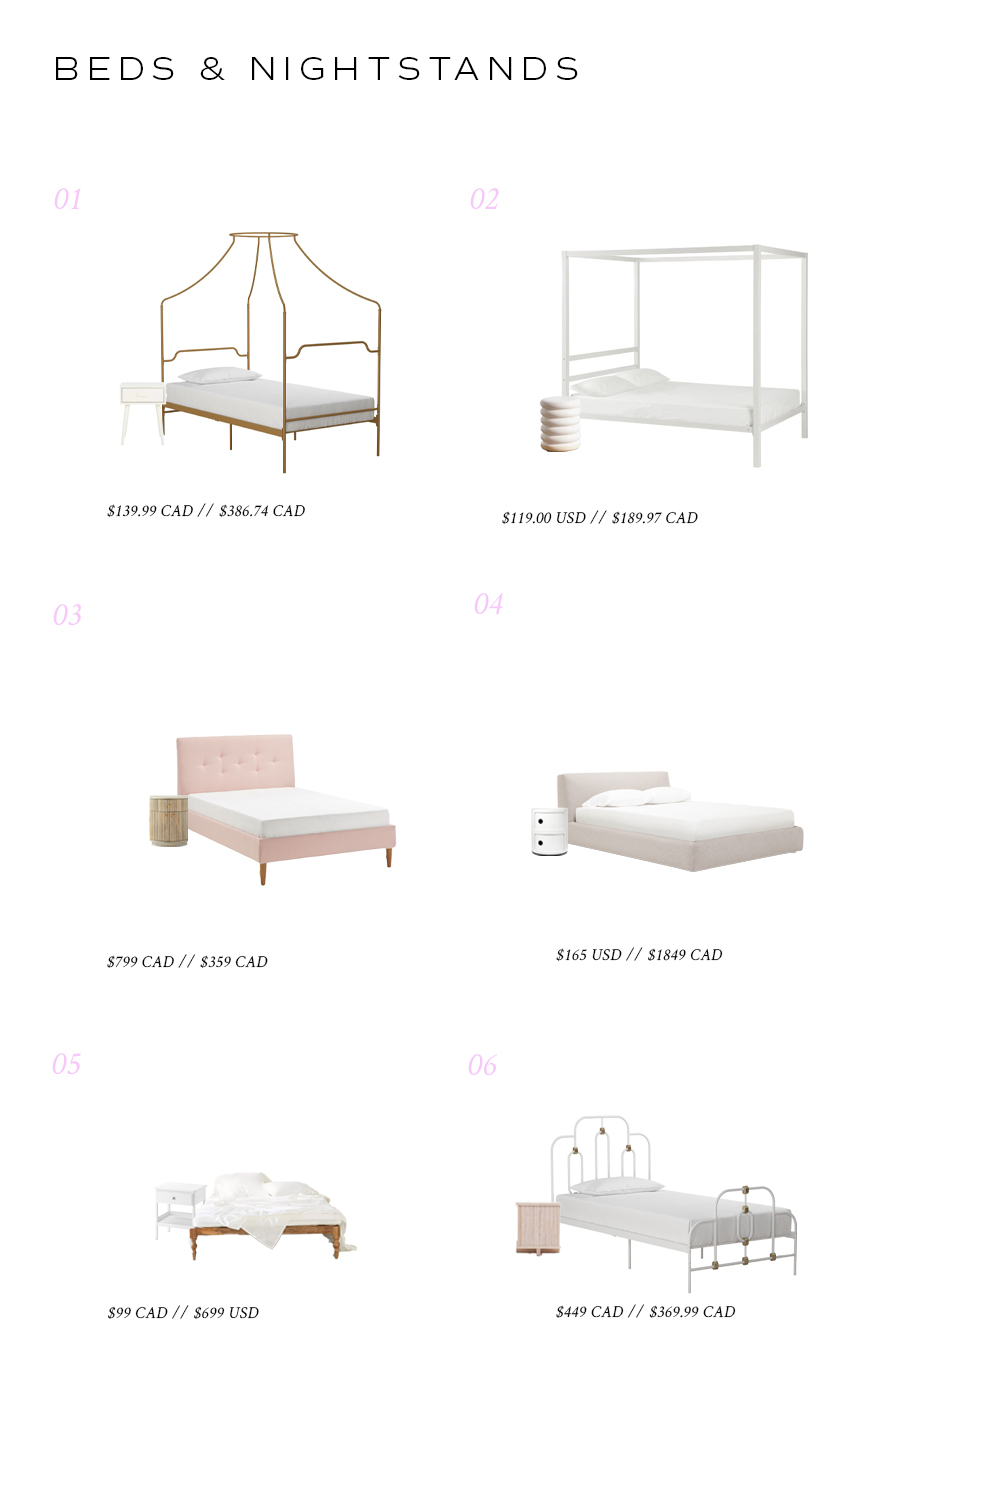 Beds and nightstands and prices